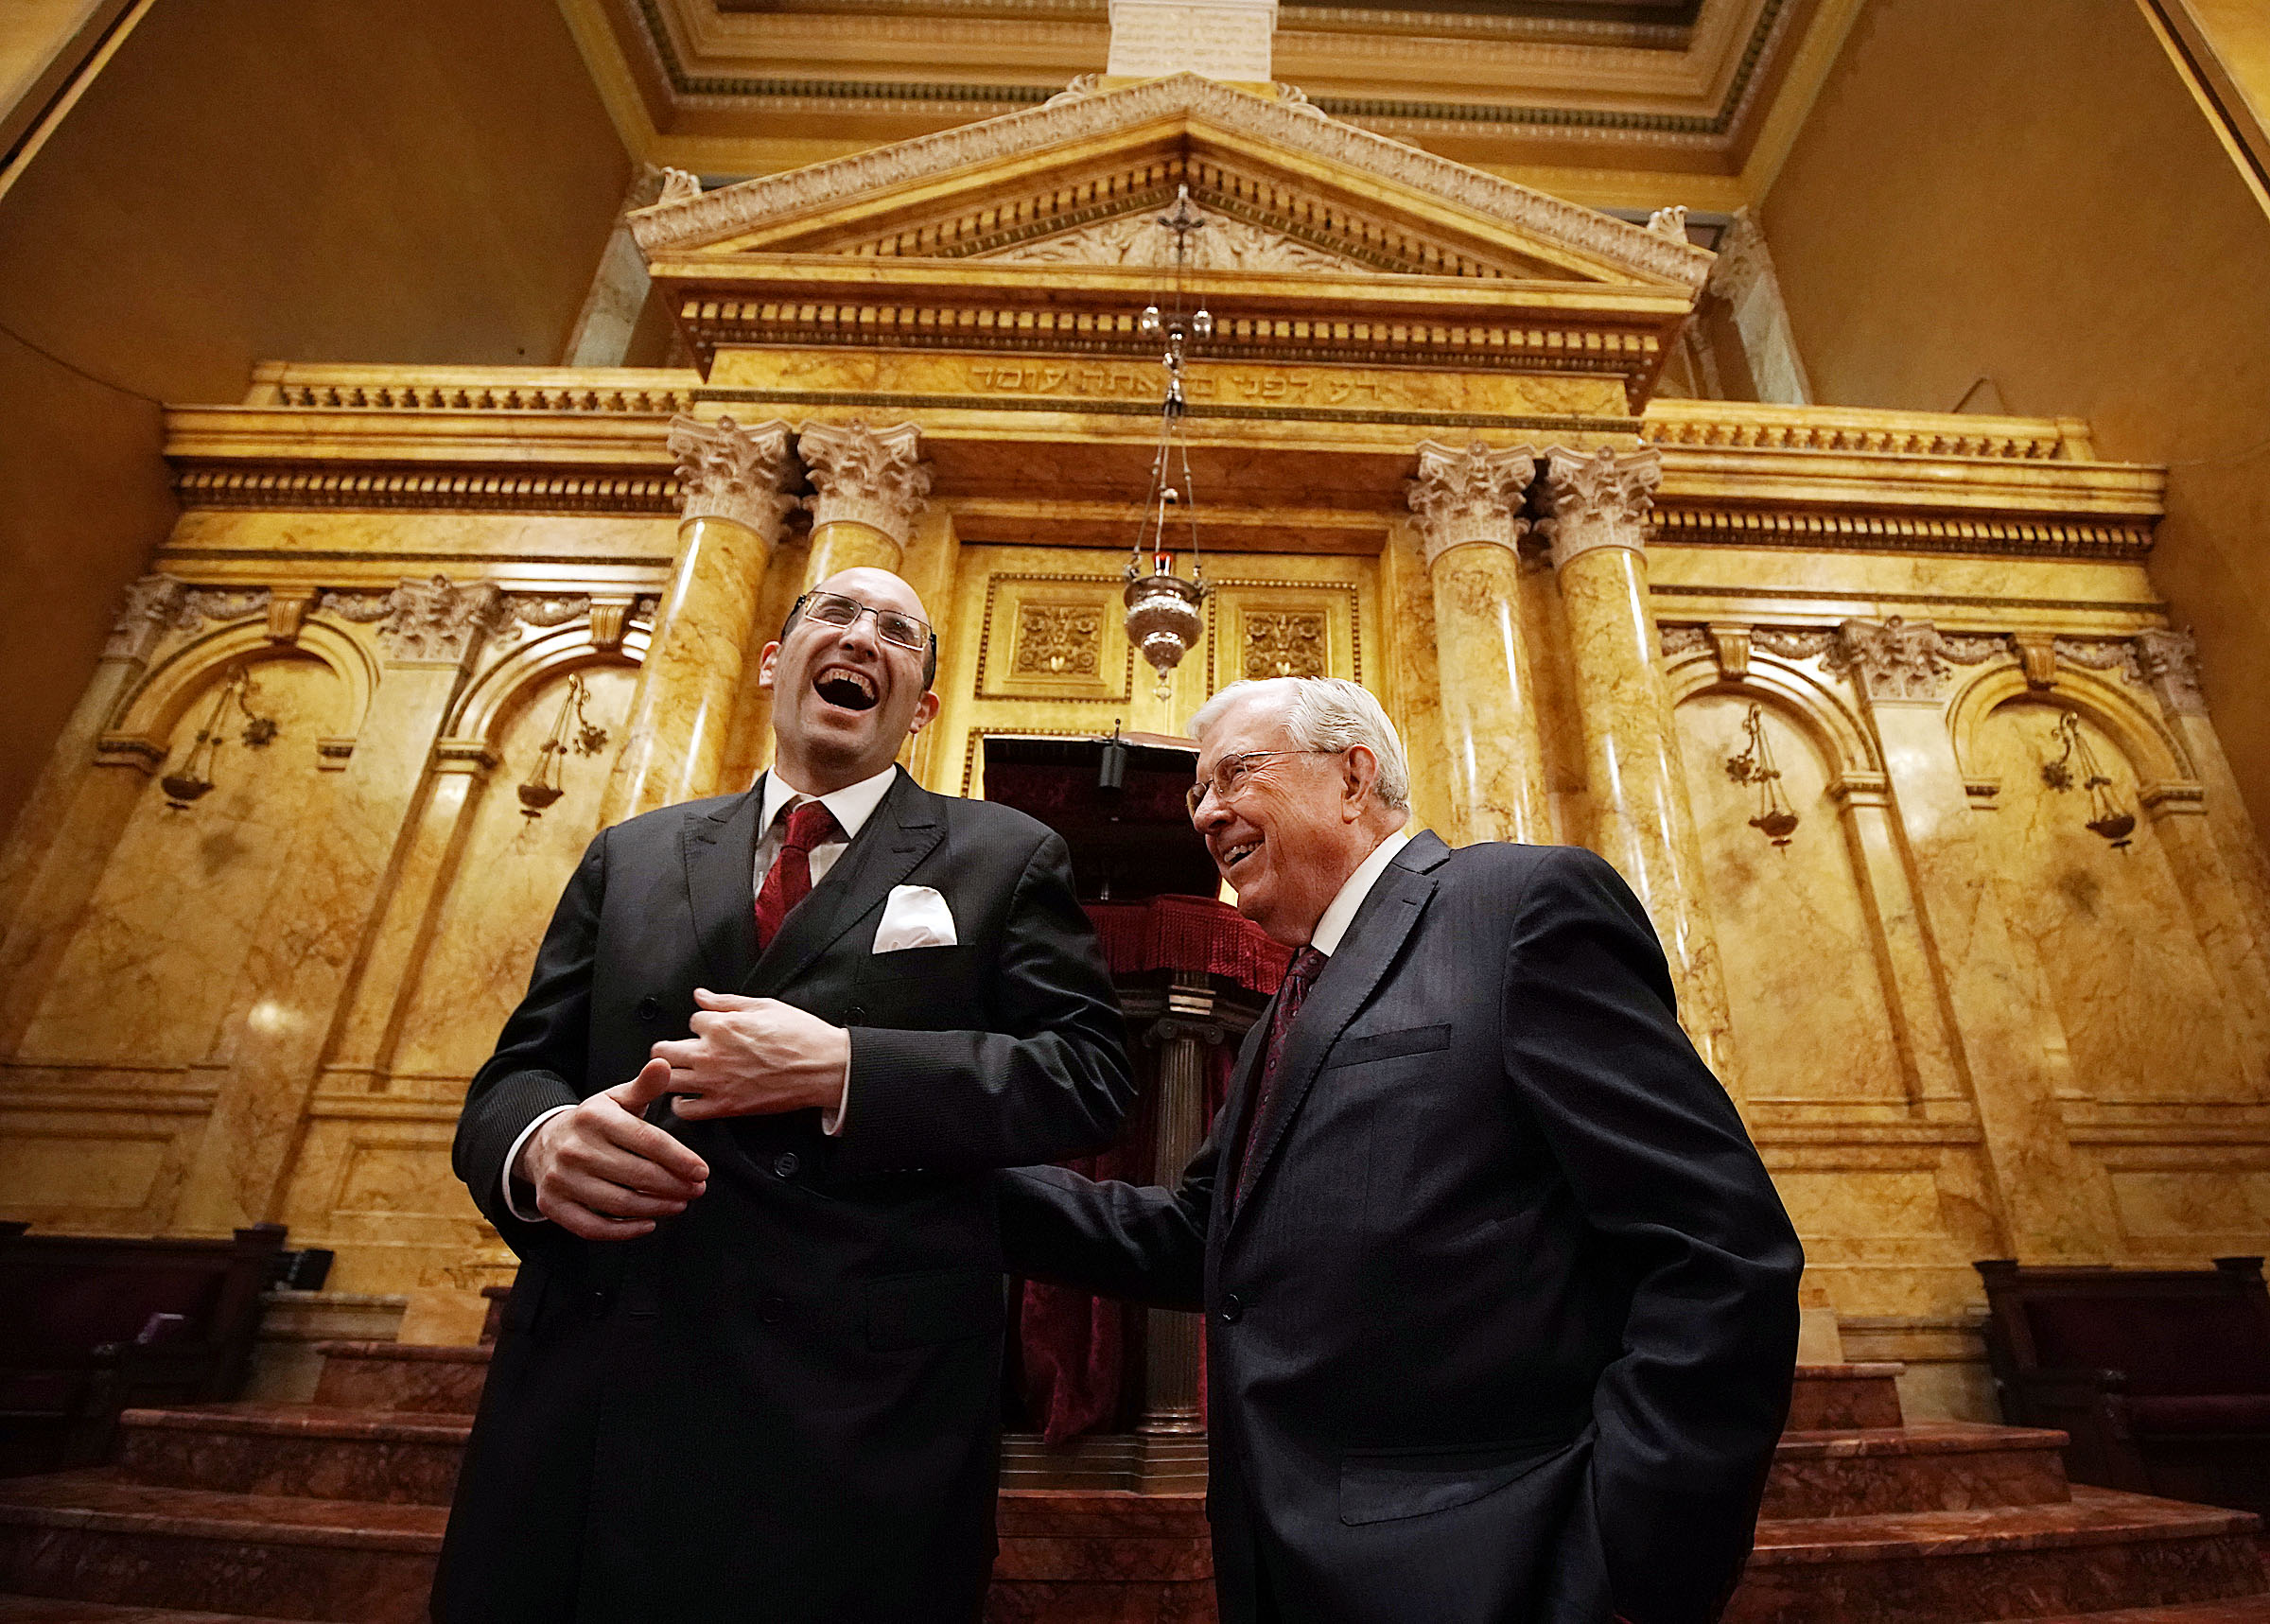 President M. Russell Ballard, right, acting president of the Quorum of the Twelve Apostles of The Church of Jesus Christ of Latter-day Saints, shares a joke with Rabbi Meir Y. Soloveichik as they tour the Spanish and Portuguese Synagogue of the Congregation Shearith Israel in New York City on Friday, Nov. 15, 2019.